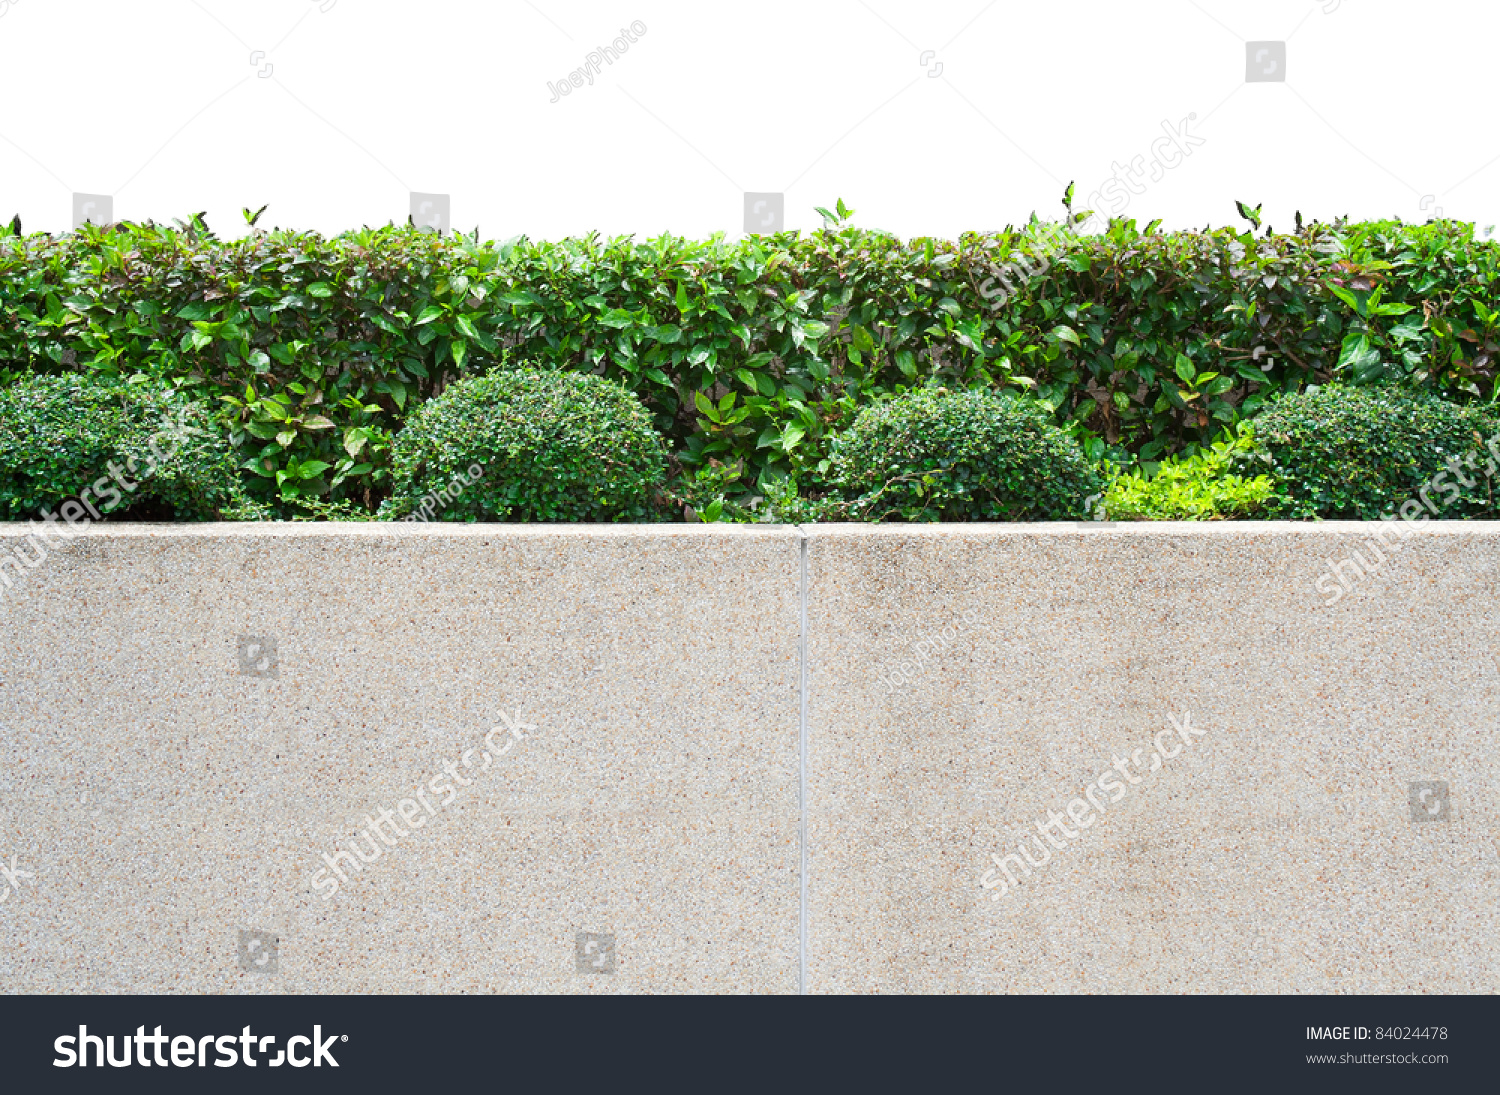 Exterior decoration garden on gravel concrete stock photo for White garden walls